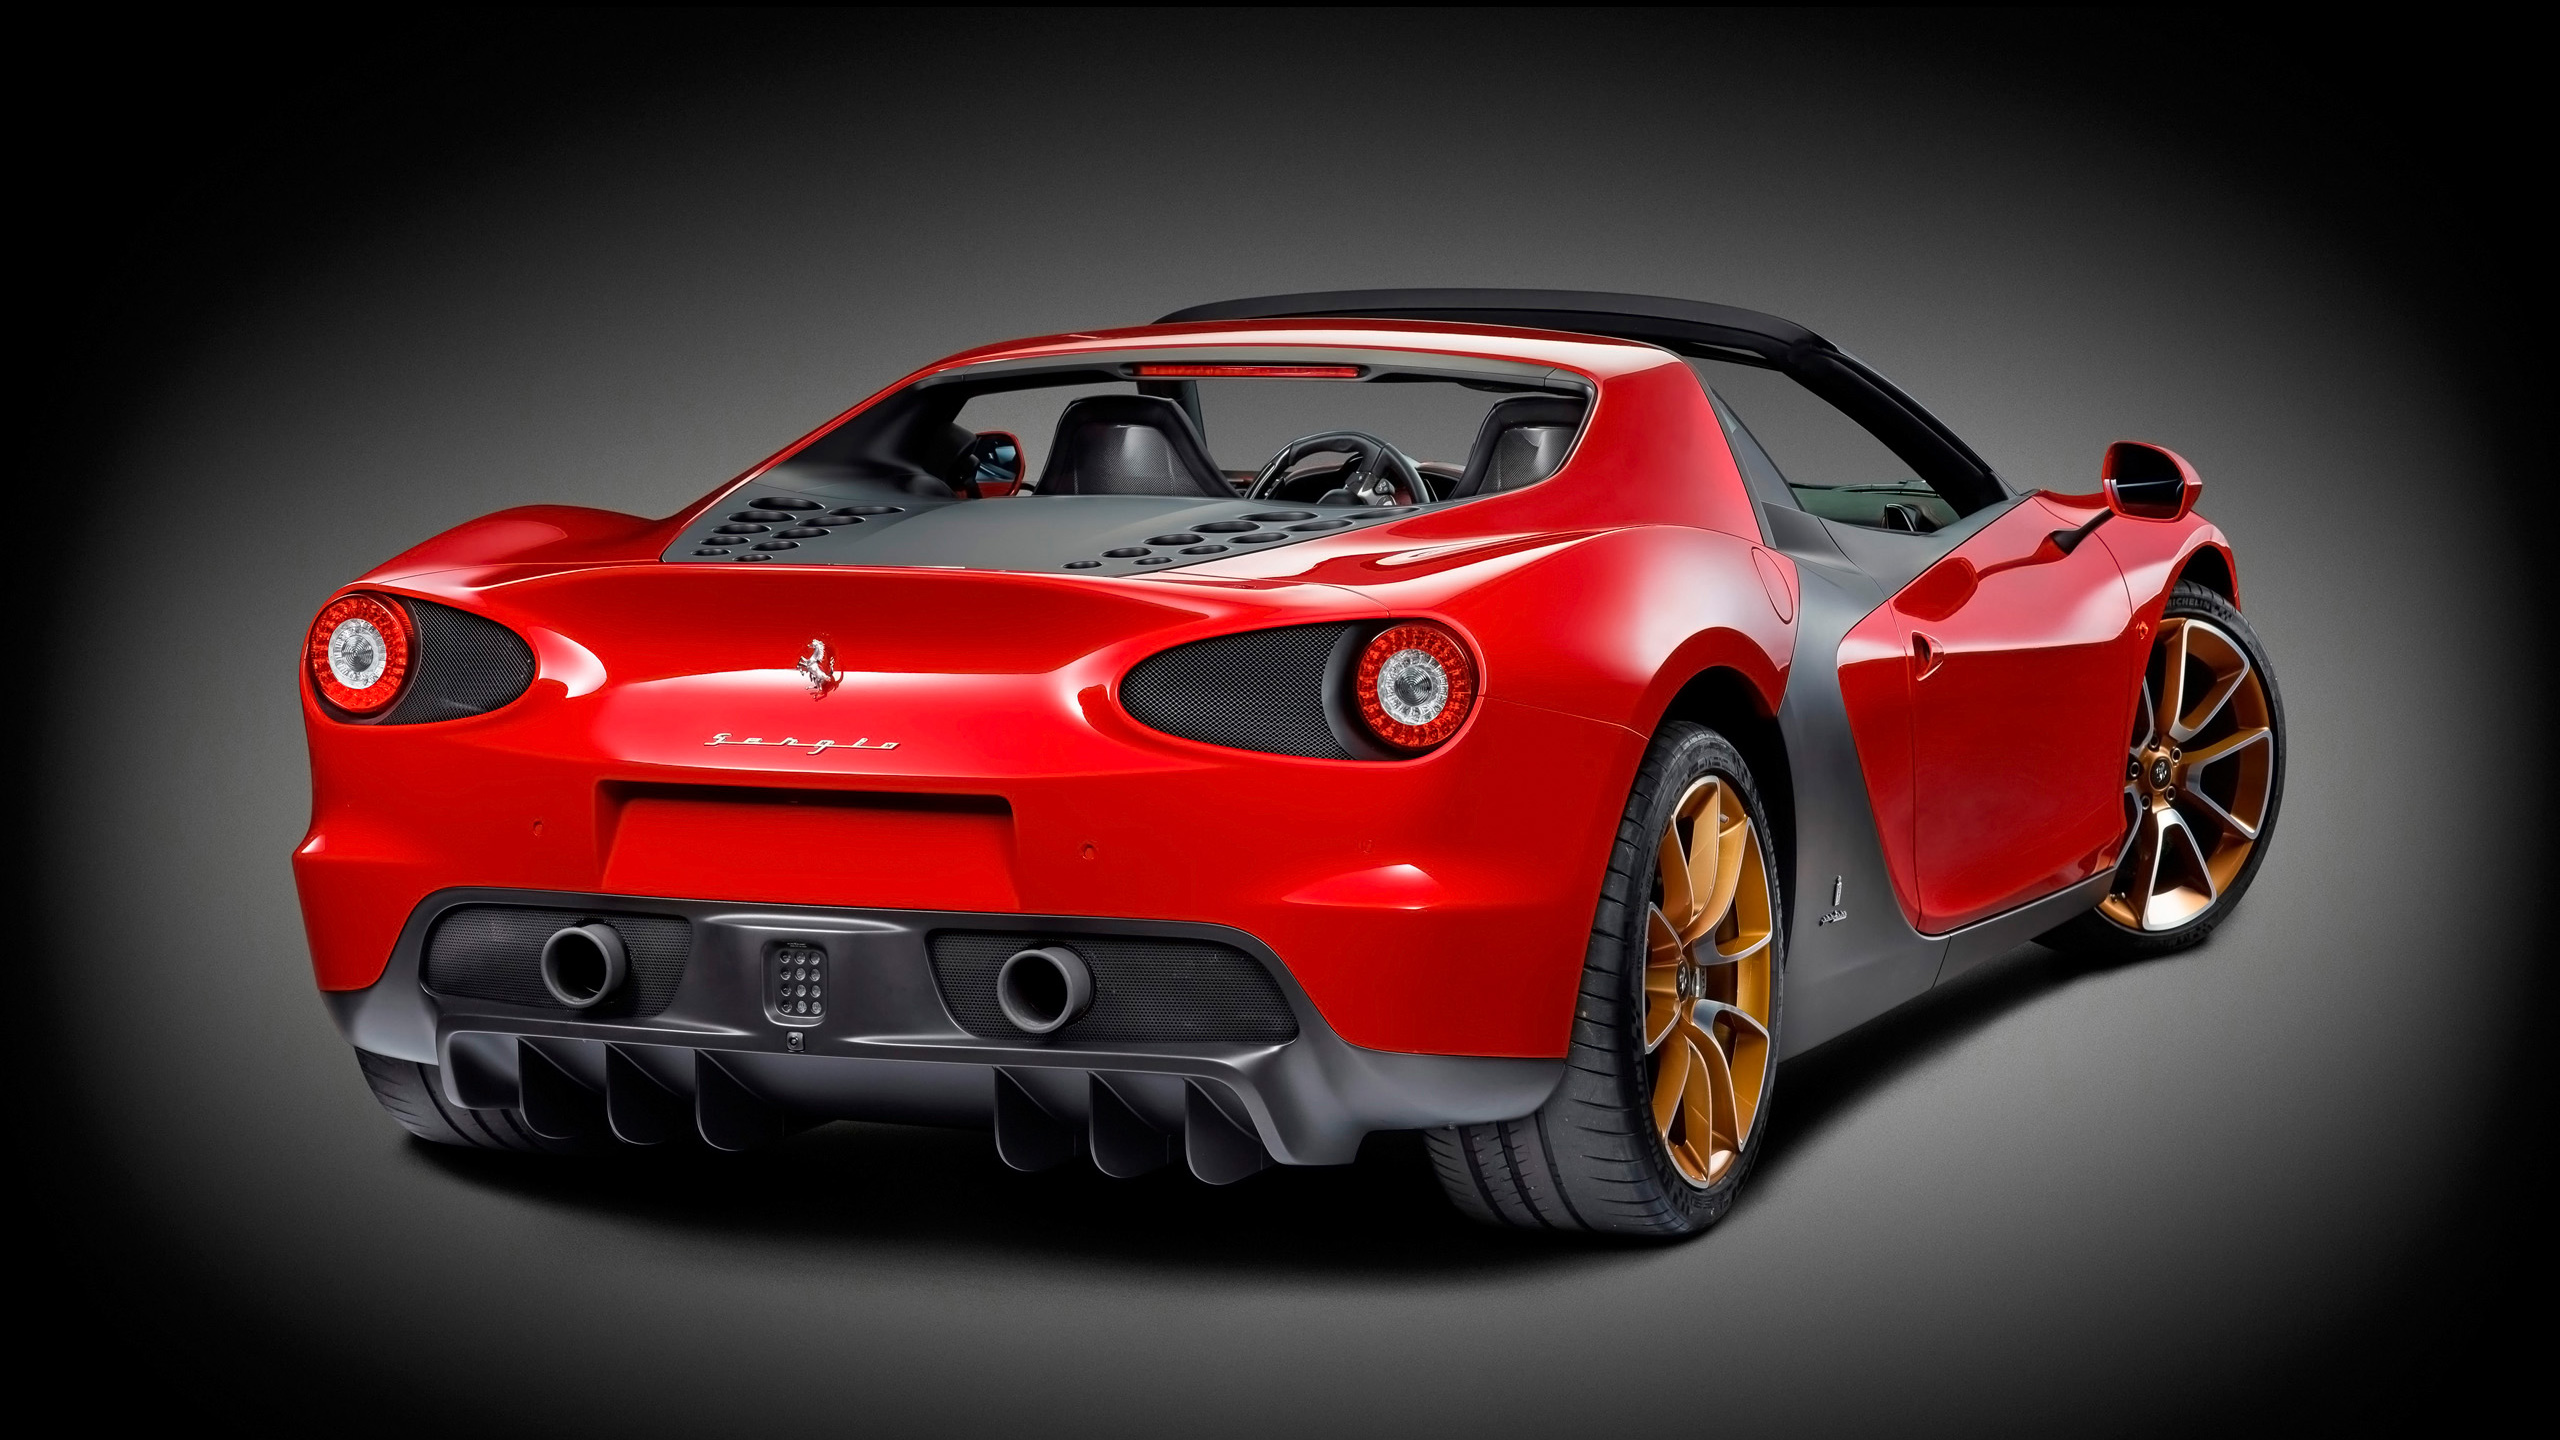 2015 Ferrari Sergio 2 Wallpaper HD Car Wallpapers 2560x1440